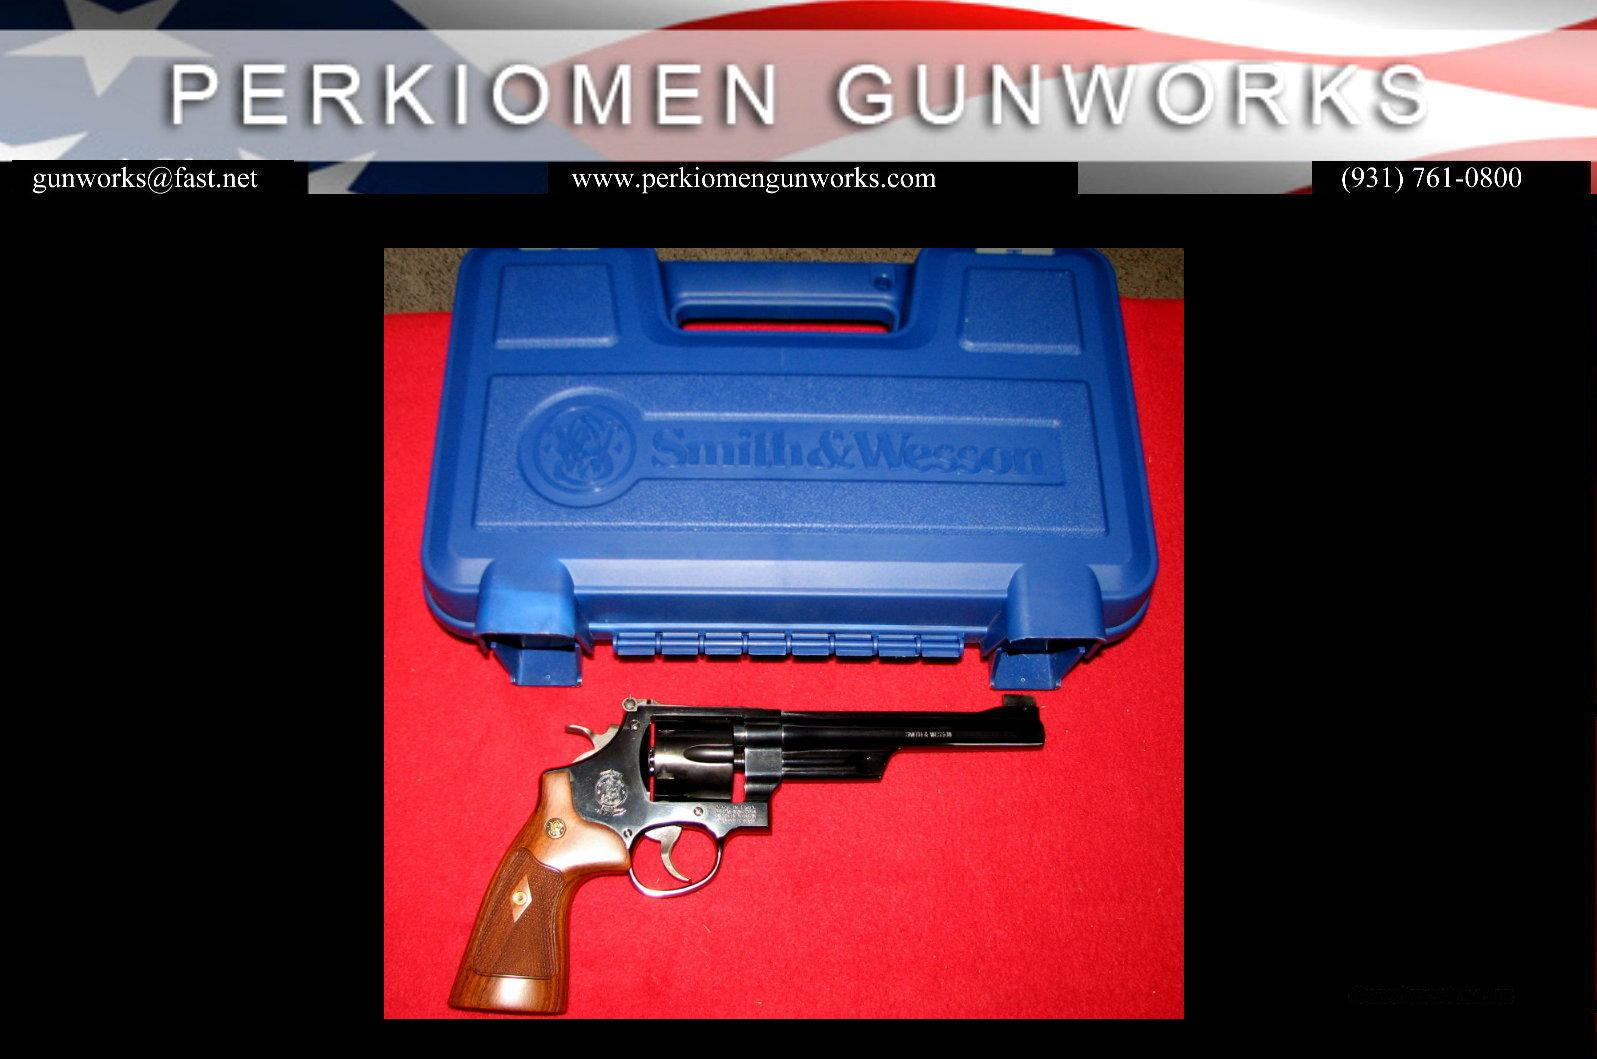 "27-9, .357, 6 1/2"", #150341 Classic Blued - As New  Guns > Pistols > Smith & Wesson Revolvers > Full Frame Revolver"